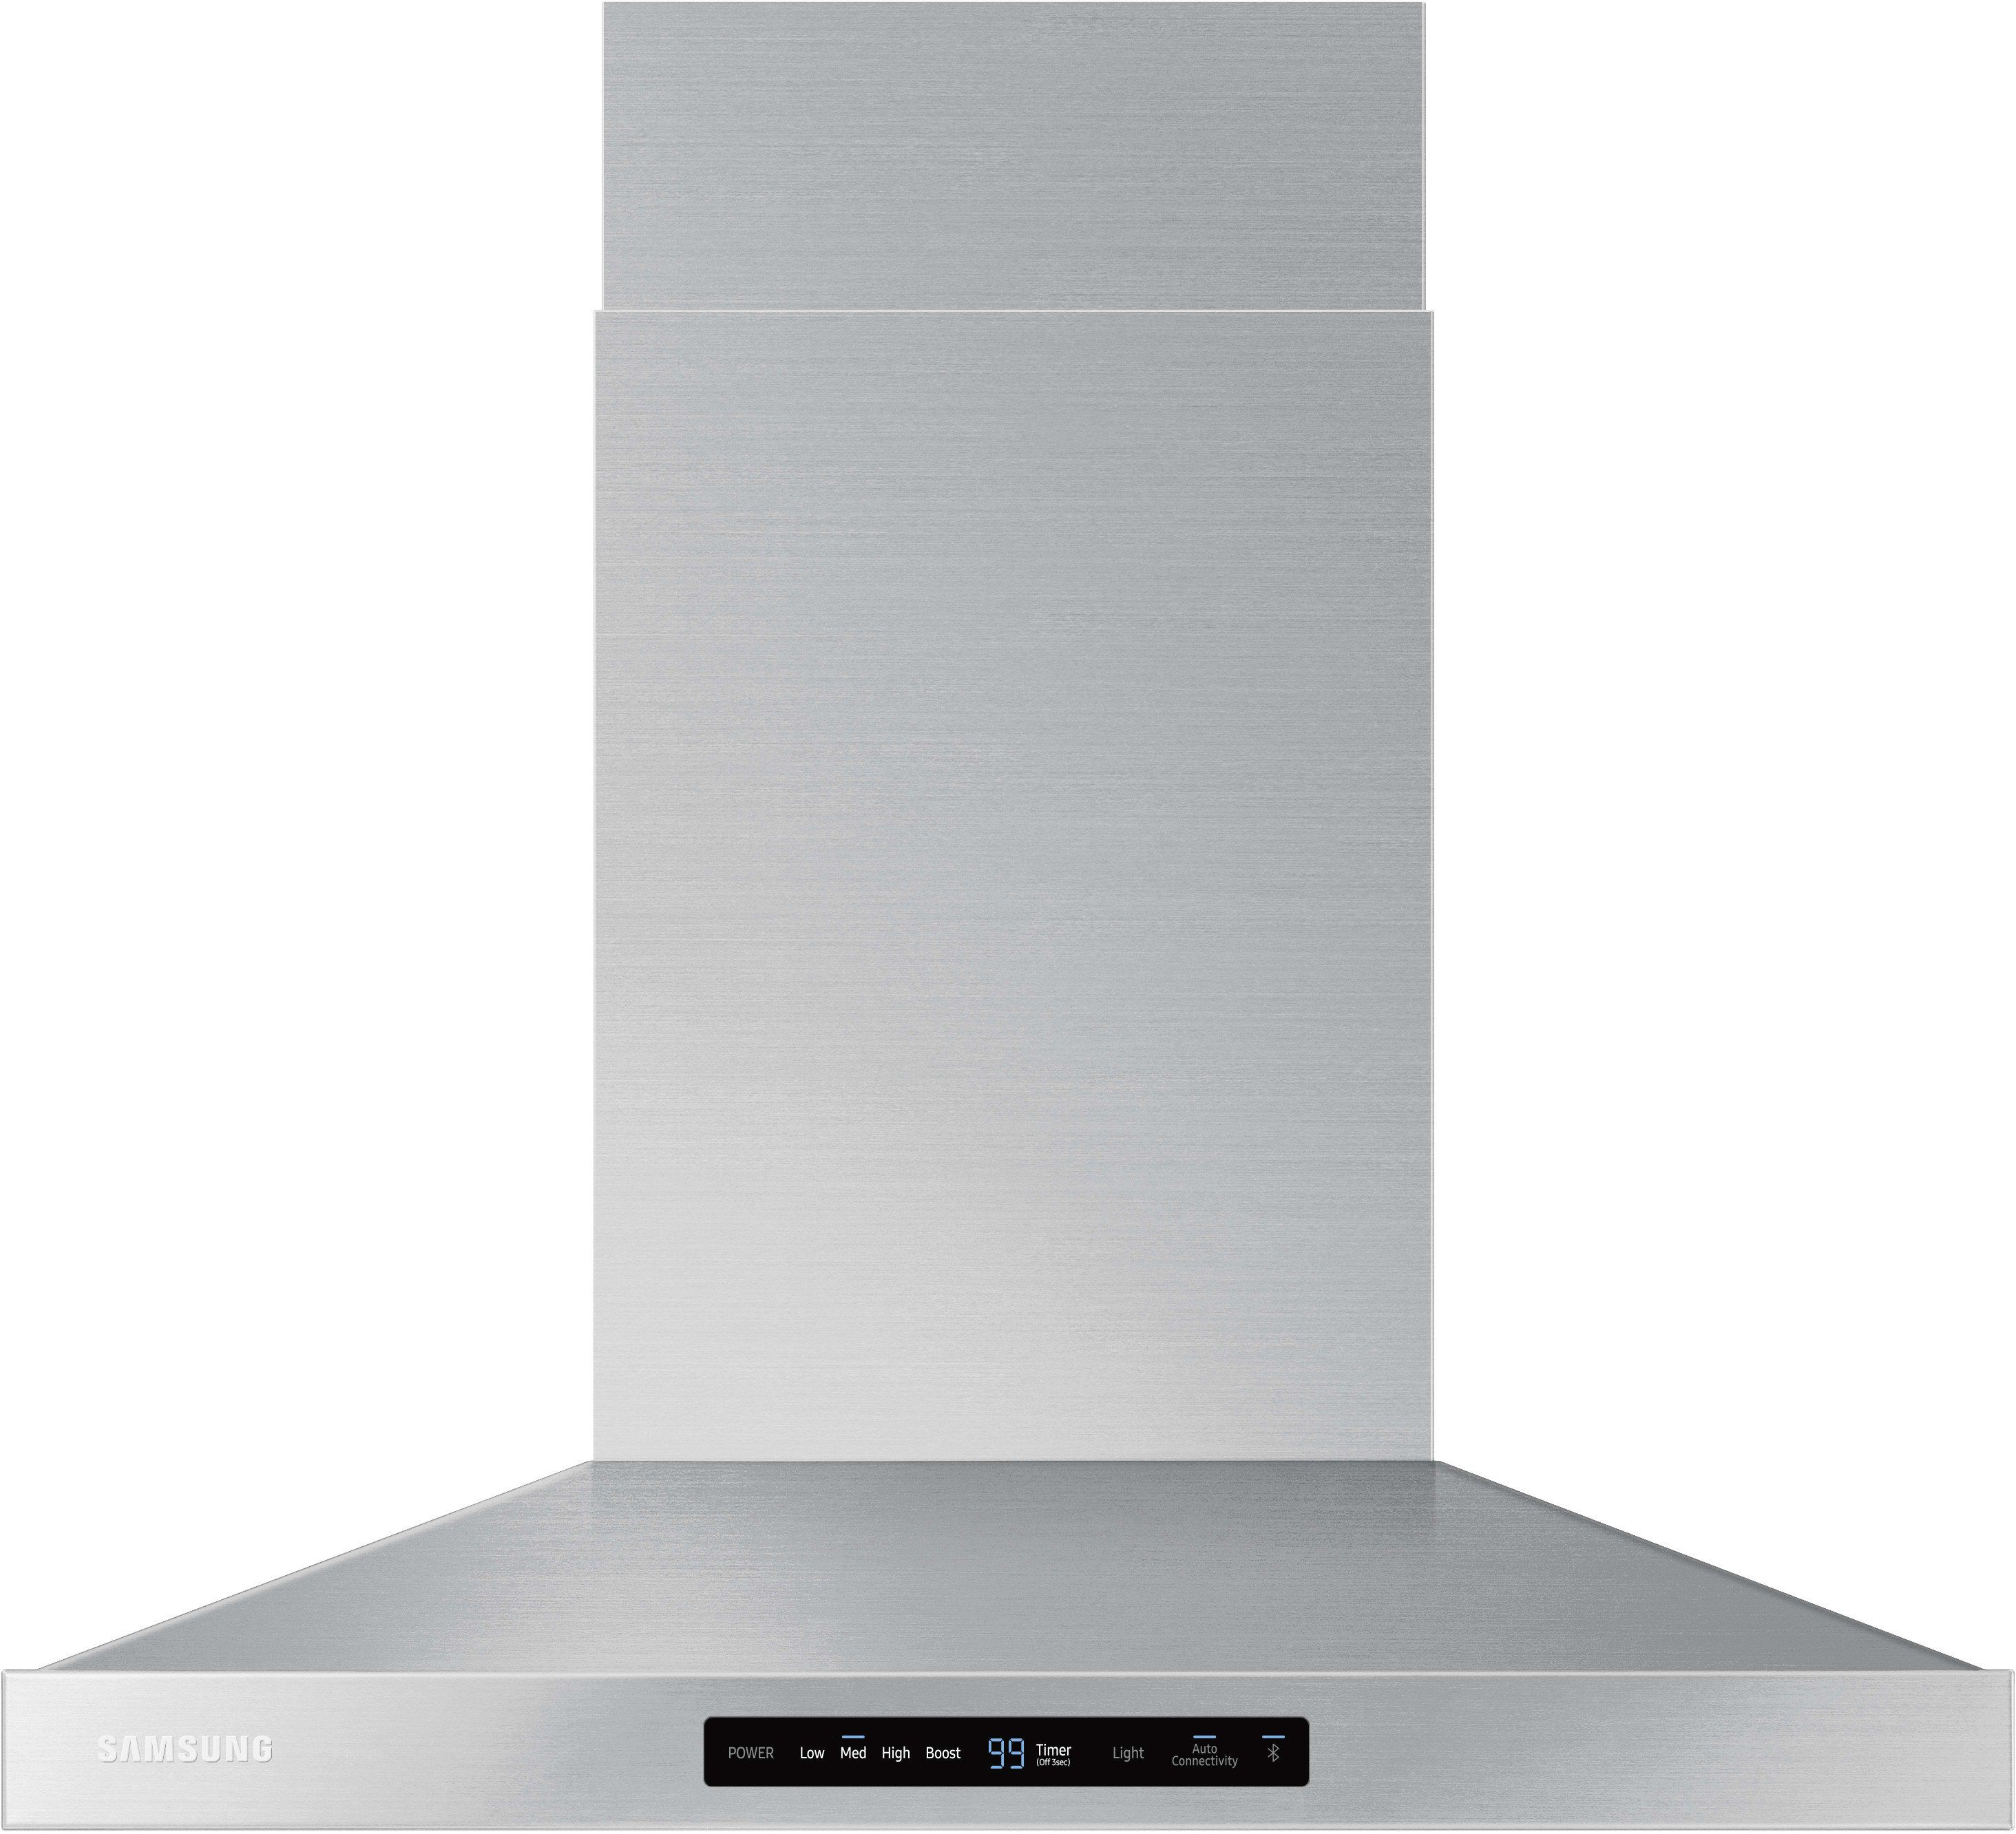 Samsung Nk30k7000wg 30 Inch Smart Wall Mount Chimney Range Hood With Wi Fi And Bluetooth Connectivity 600 Cfm 4 Speeds Booster Led Cooktop Lighting Digital Stainless Steel Range Hood Stainless Range Hood